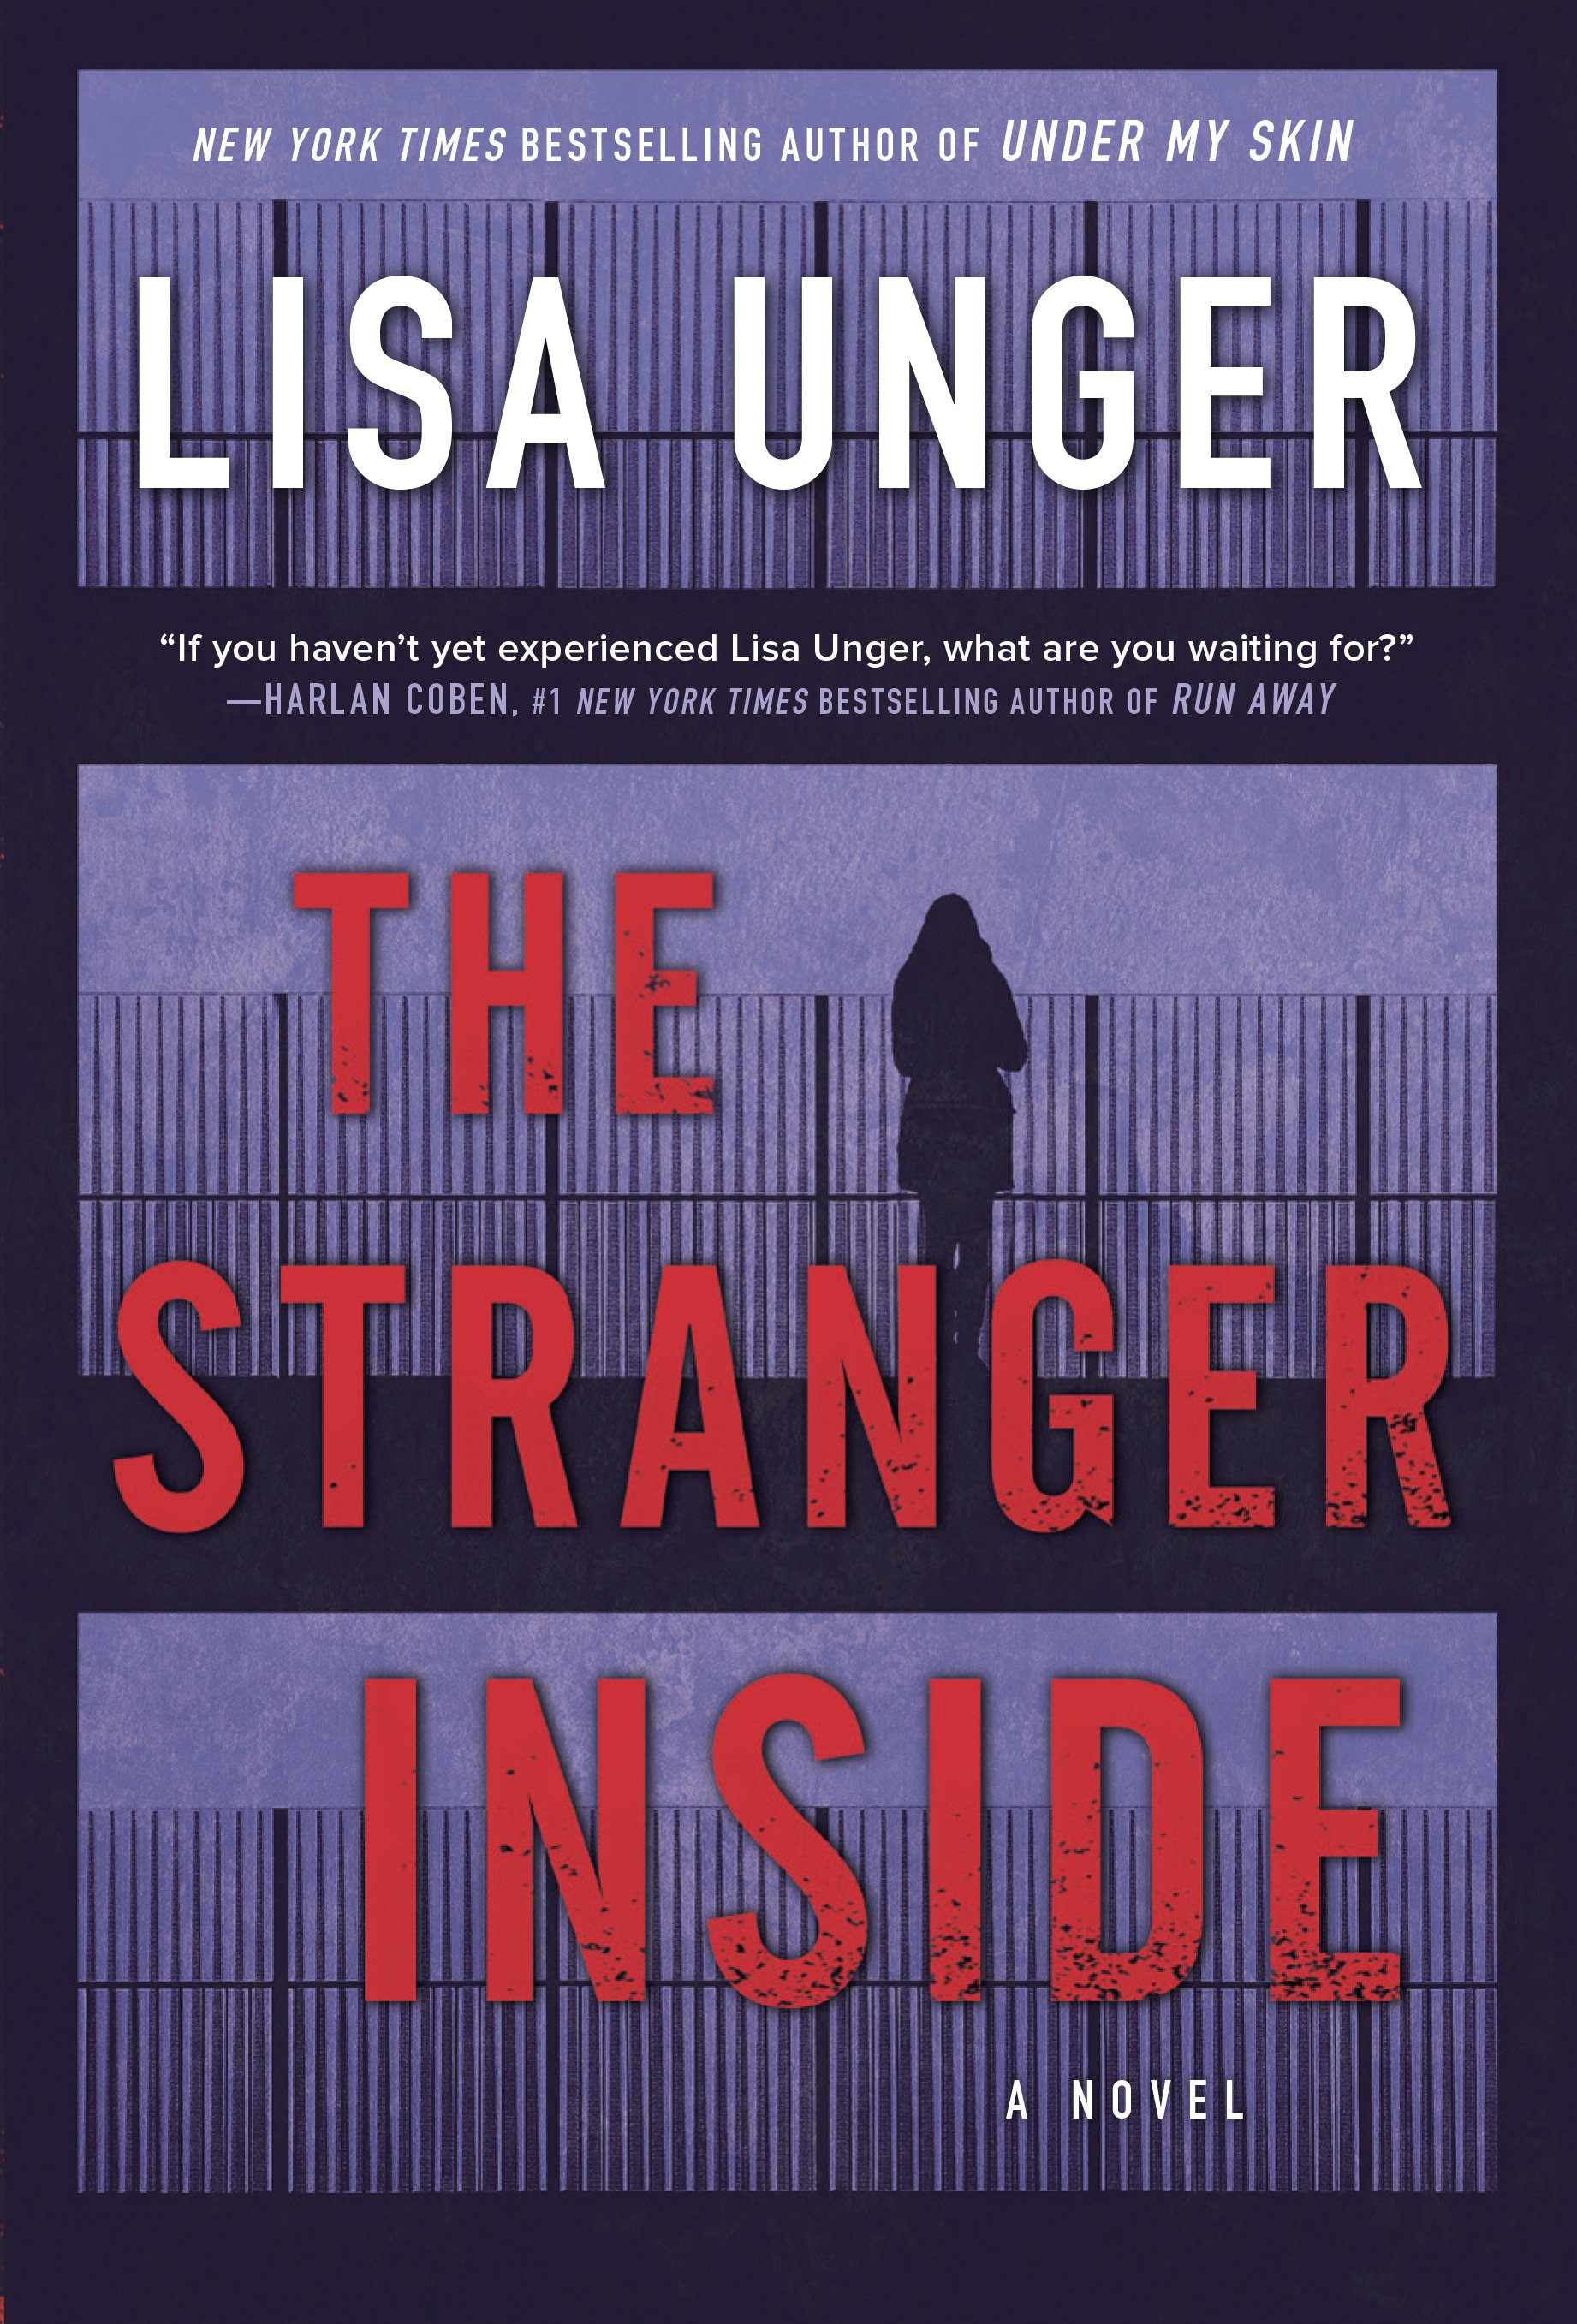 Lisa Unger's 'The Stranger Inside' is psychological thriller